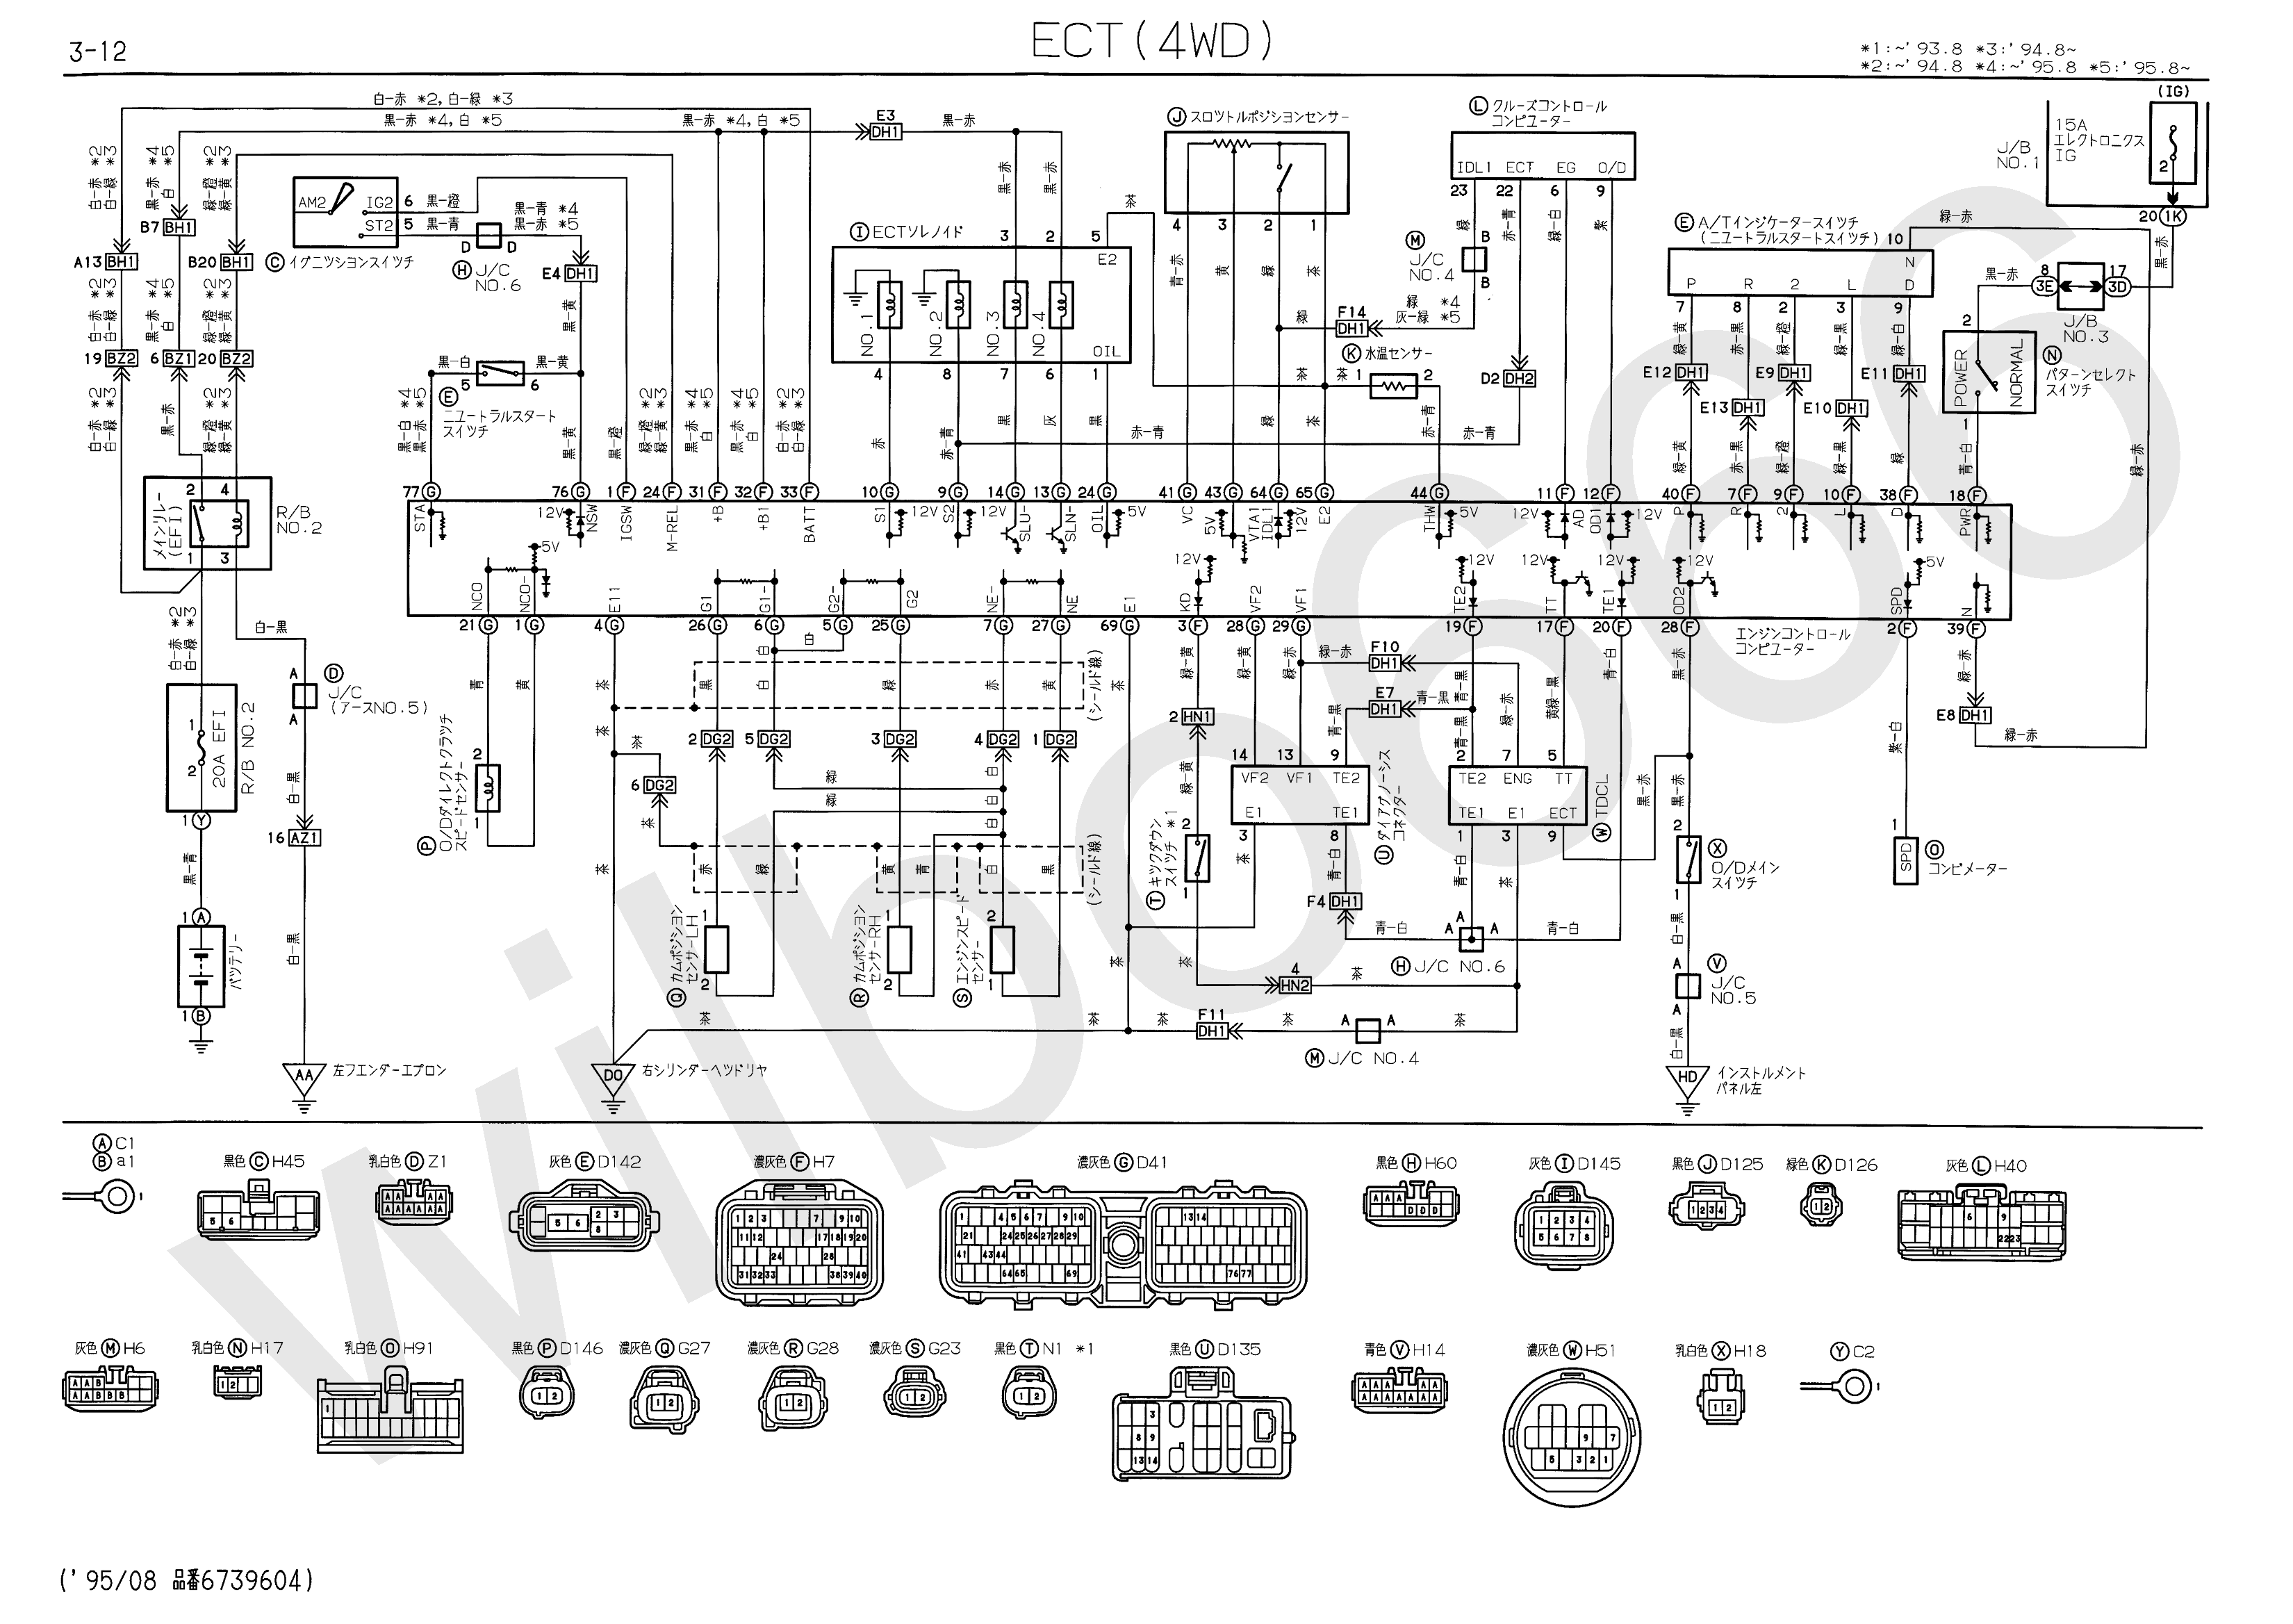 JZS14%23%2C UZS14%23 Electrical Wiring Diagram 6739604 3 12?resize\\\\\\\\\\\\\\\\\\\\\\\\\\\\\\\\\\\\\\\\\\\\\\\\\\\\\\\\\\\\\\\\\\\\\\\\\\\\\\\\\\\\\\\\\\\\\\\\\\\\\\\\\\\\\\\\\\\\\\\\\\\\\\\\\\\\\\\\\\\\\\\\\\\\\\\\\\\\\\\\\\\\\\\\\\\\\\\\\\\\\\\\\\\\\\\\\\\\\\\\\\\\\\\\\\\\\\\\\\\\\\\\\\\\\\\\\\\\\\\\\\\\\\\\\\\\\\\\\\\\\\\\\\\\\\\\\\\\\\\\\\\\\\\\\\\\\\\\\\\\\\\\\\\\\\\\\\\\\\\\\\\\\\\\\\\\\\\\\\\\\\\\\\\\\\\\\\\\\\\\\\\\\\\\\\\\\\\\\\\\\\\\\\\\\\\\\\\\\\\\\\\\\\\\\\\\\\\\\\\\\\\\\\\\\\\\\\\\\\\\\\\\\\\\\\\\\\\\\\\\\\\\\\\\\\\\\\\\\\\=665%2C471 2014 nissan pathfinder ac wiring schematic nissan pathfinder field controls ck63 wiring diagram at crackthecode.co